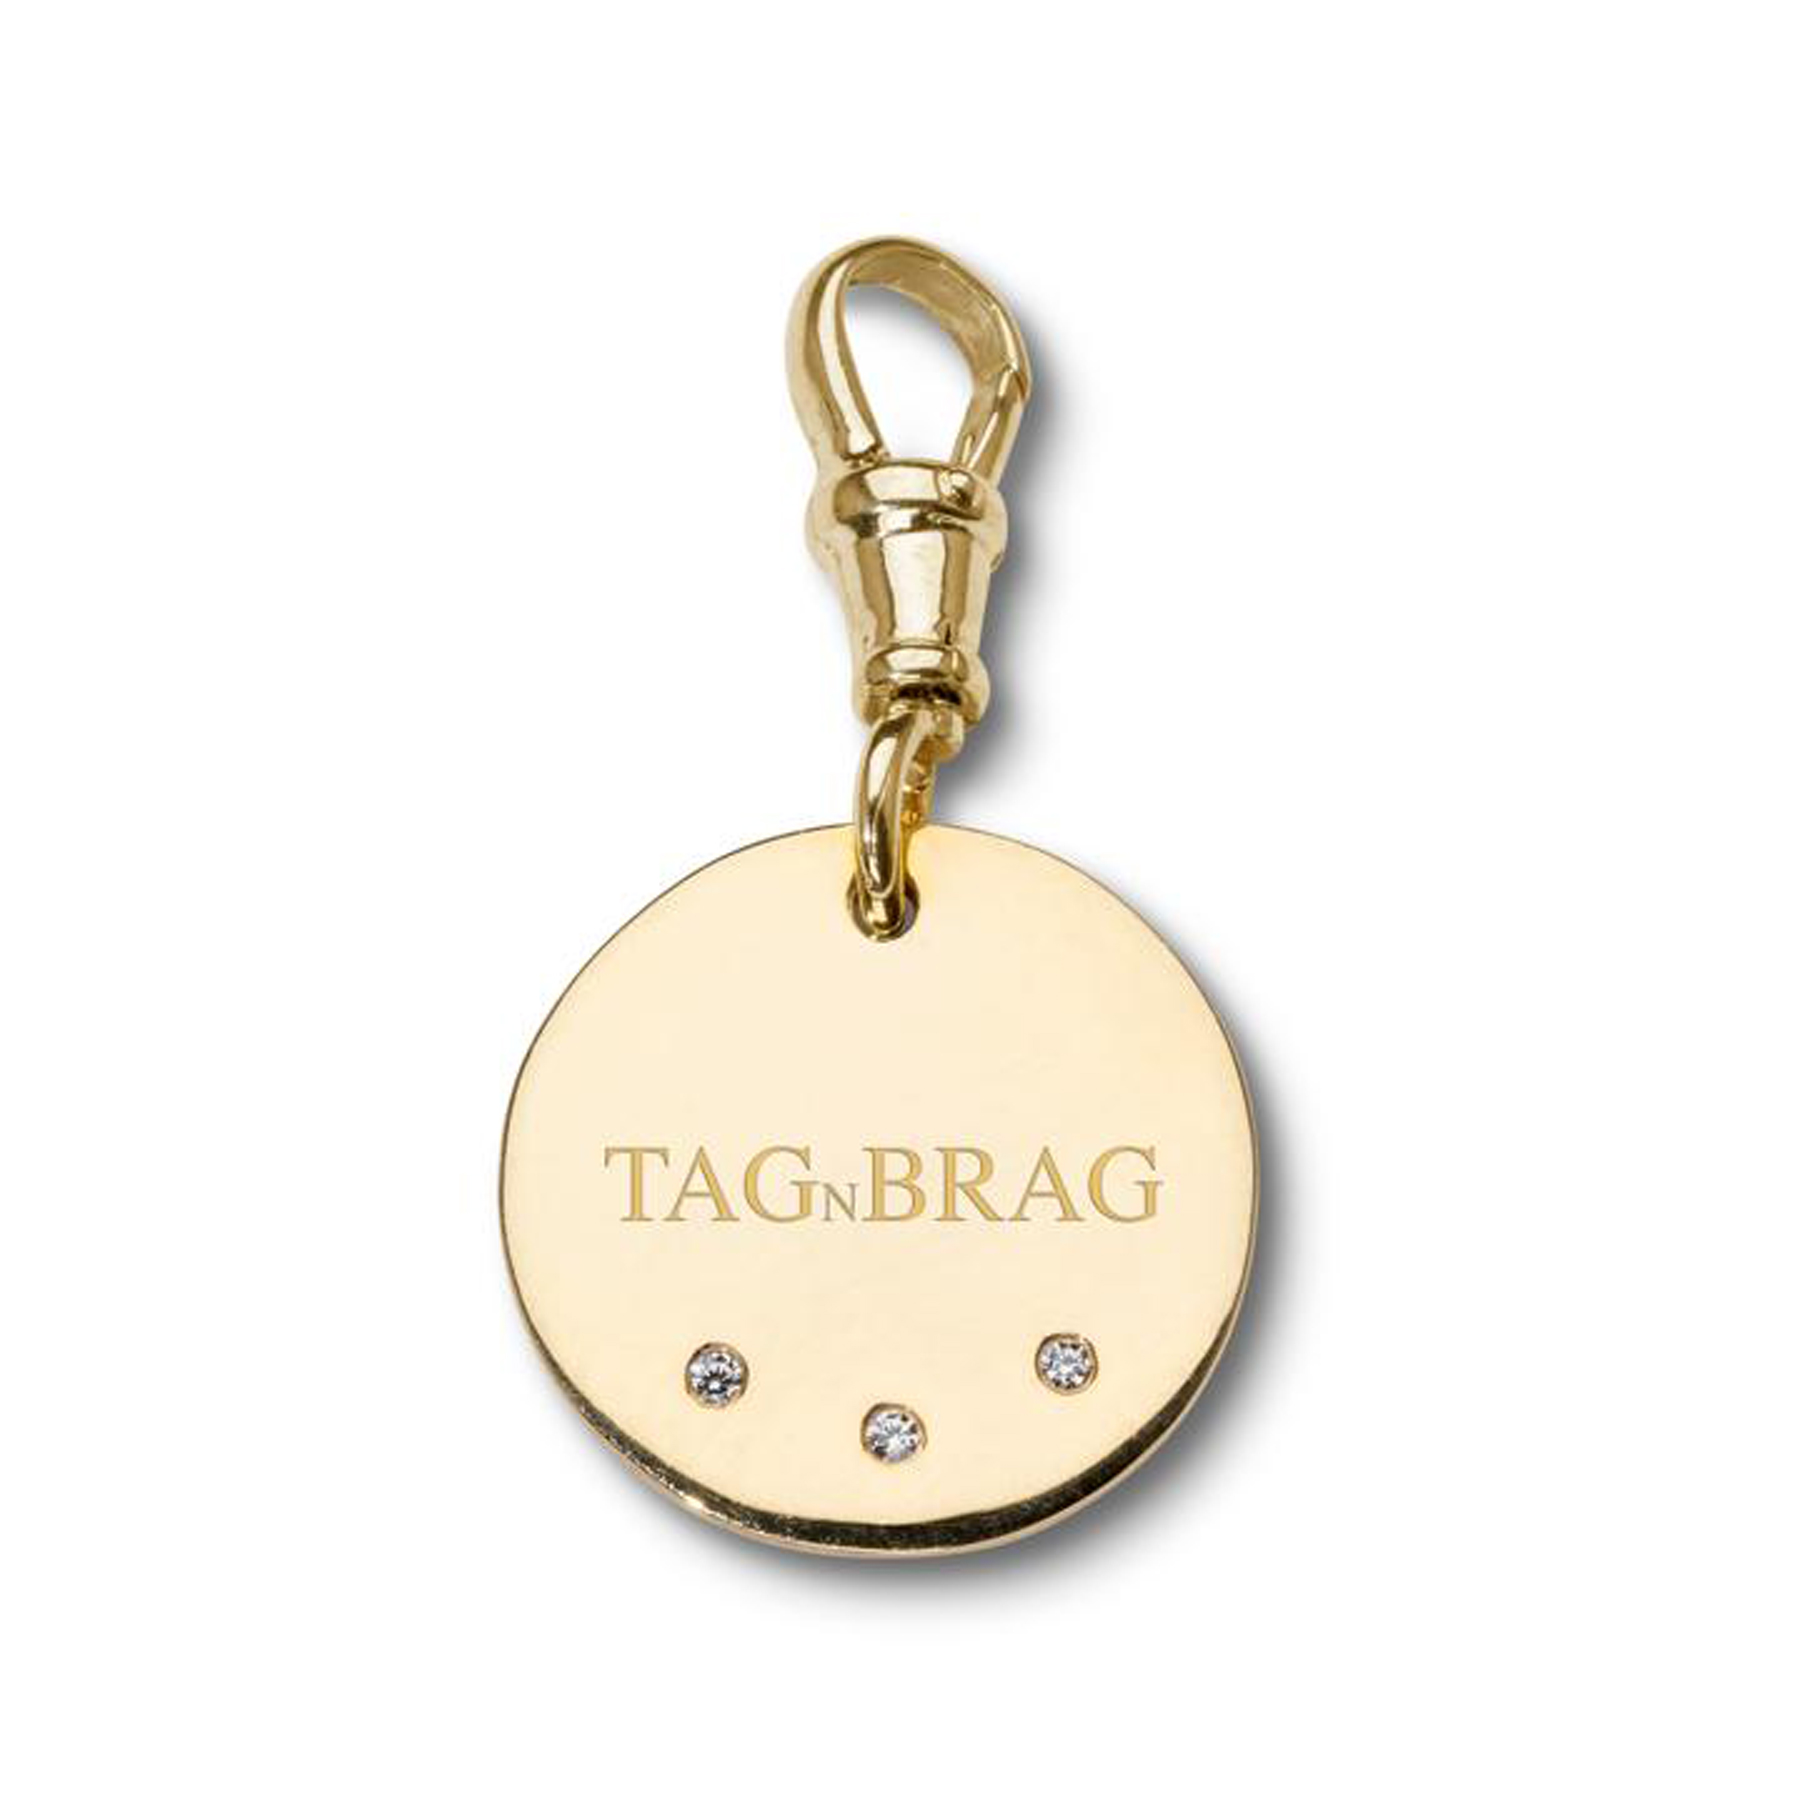 Brag n Tag Luxury Gold dog tag